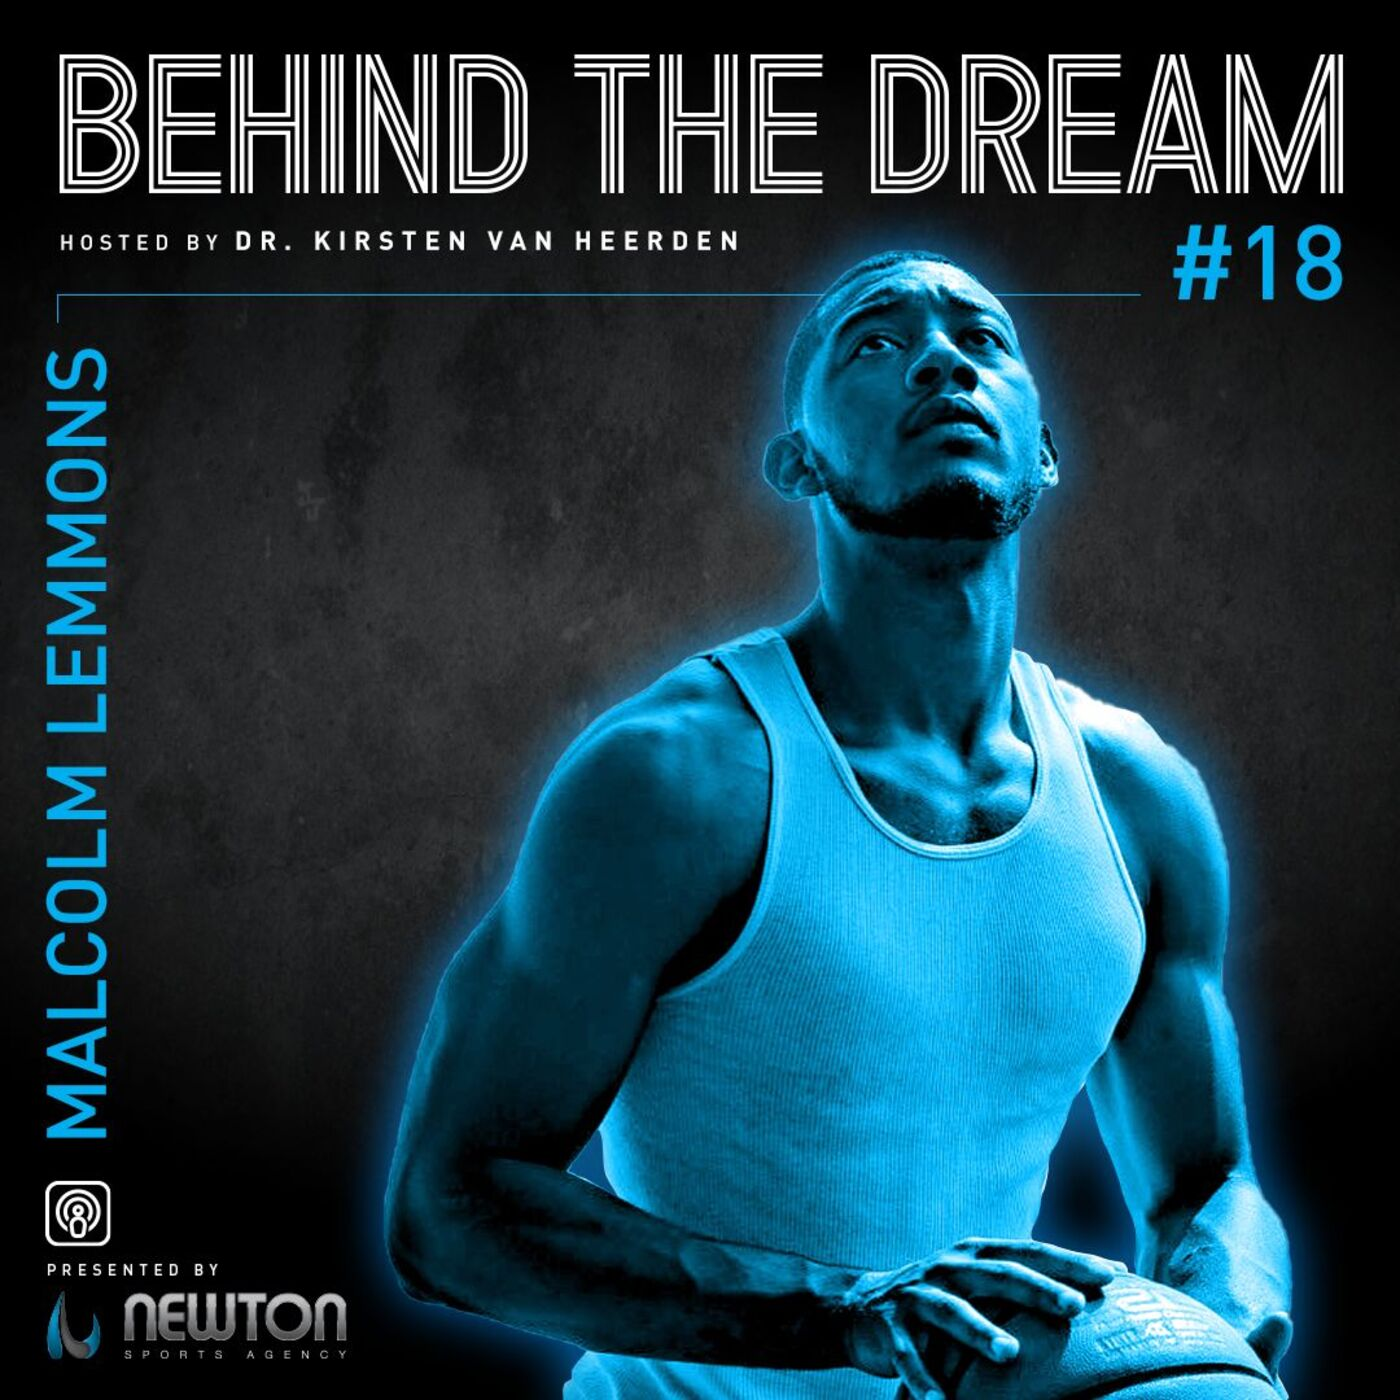 Episode #18: Malcolm Lemmons - former professional basketball player & now author, entrepreneur & mental health advocate